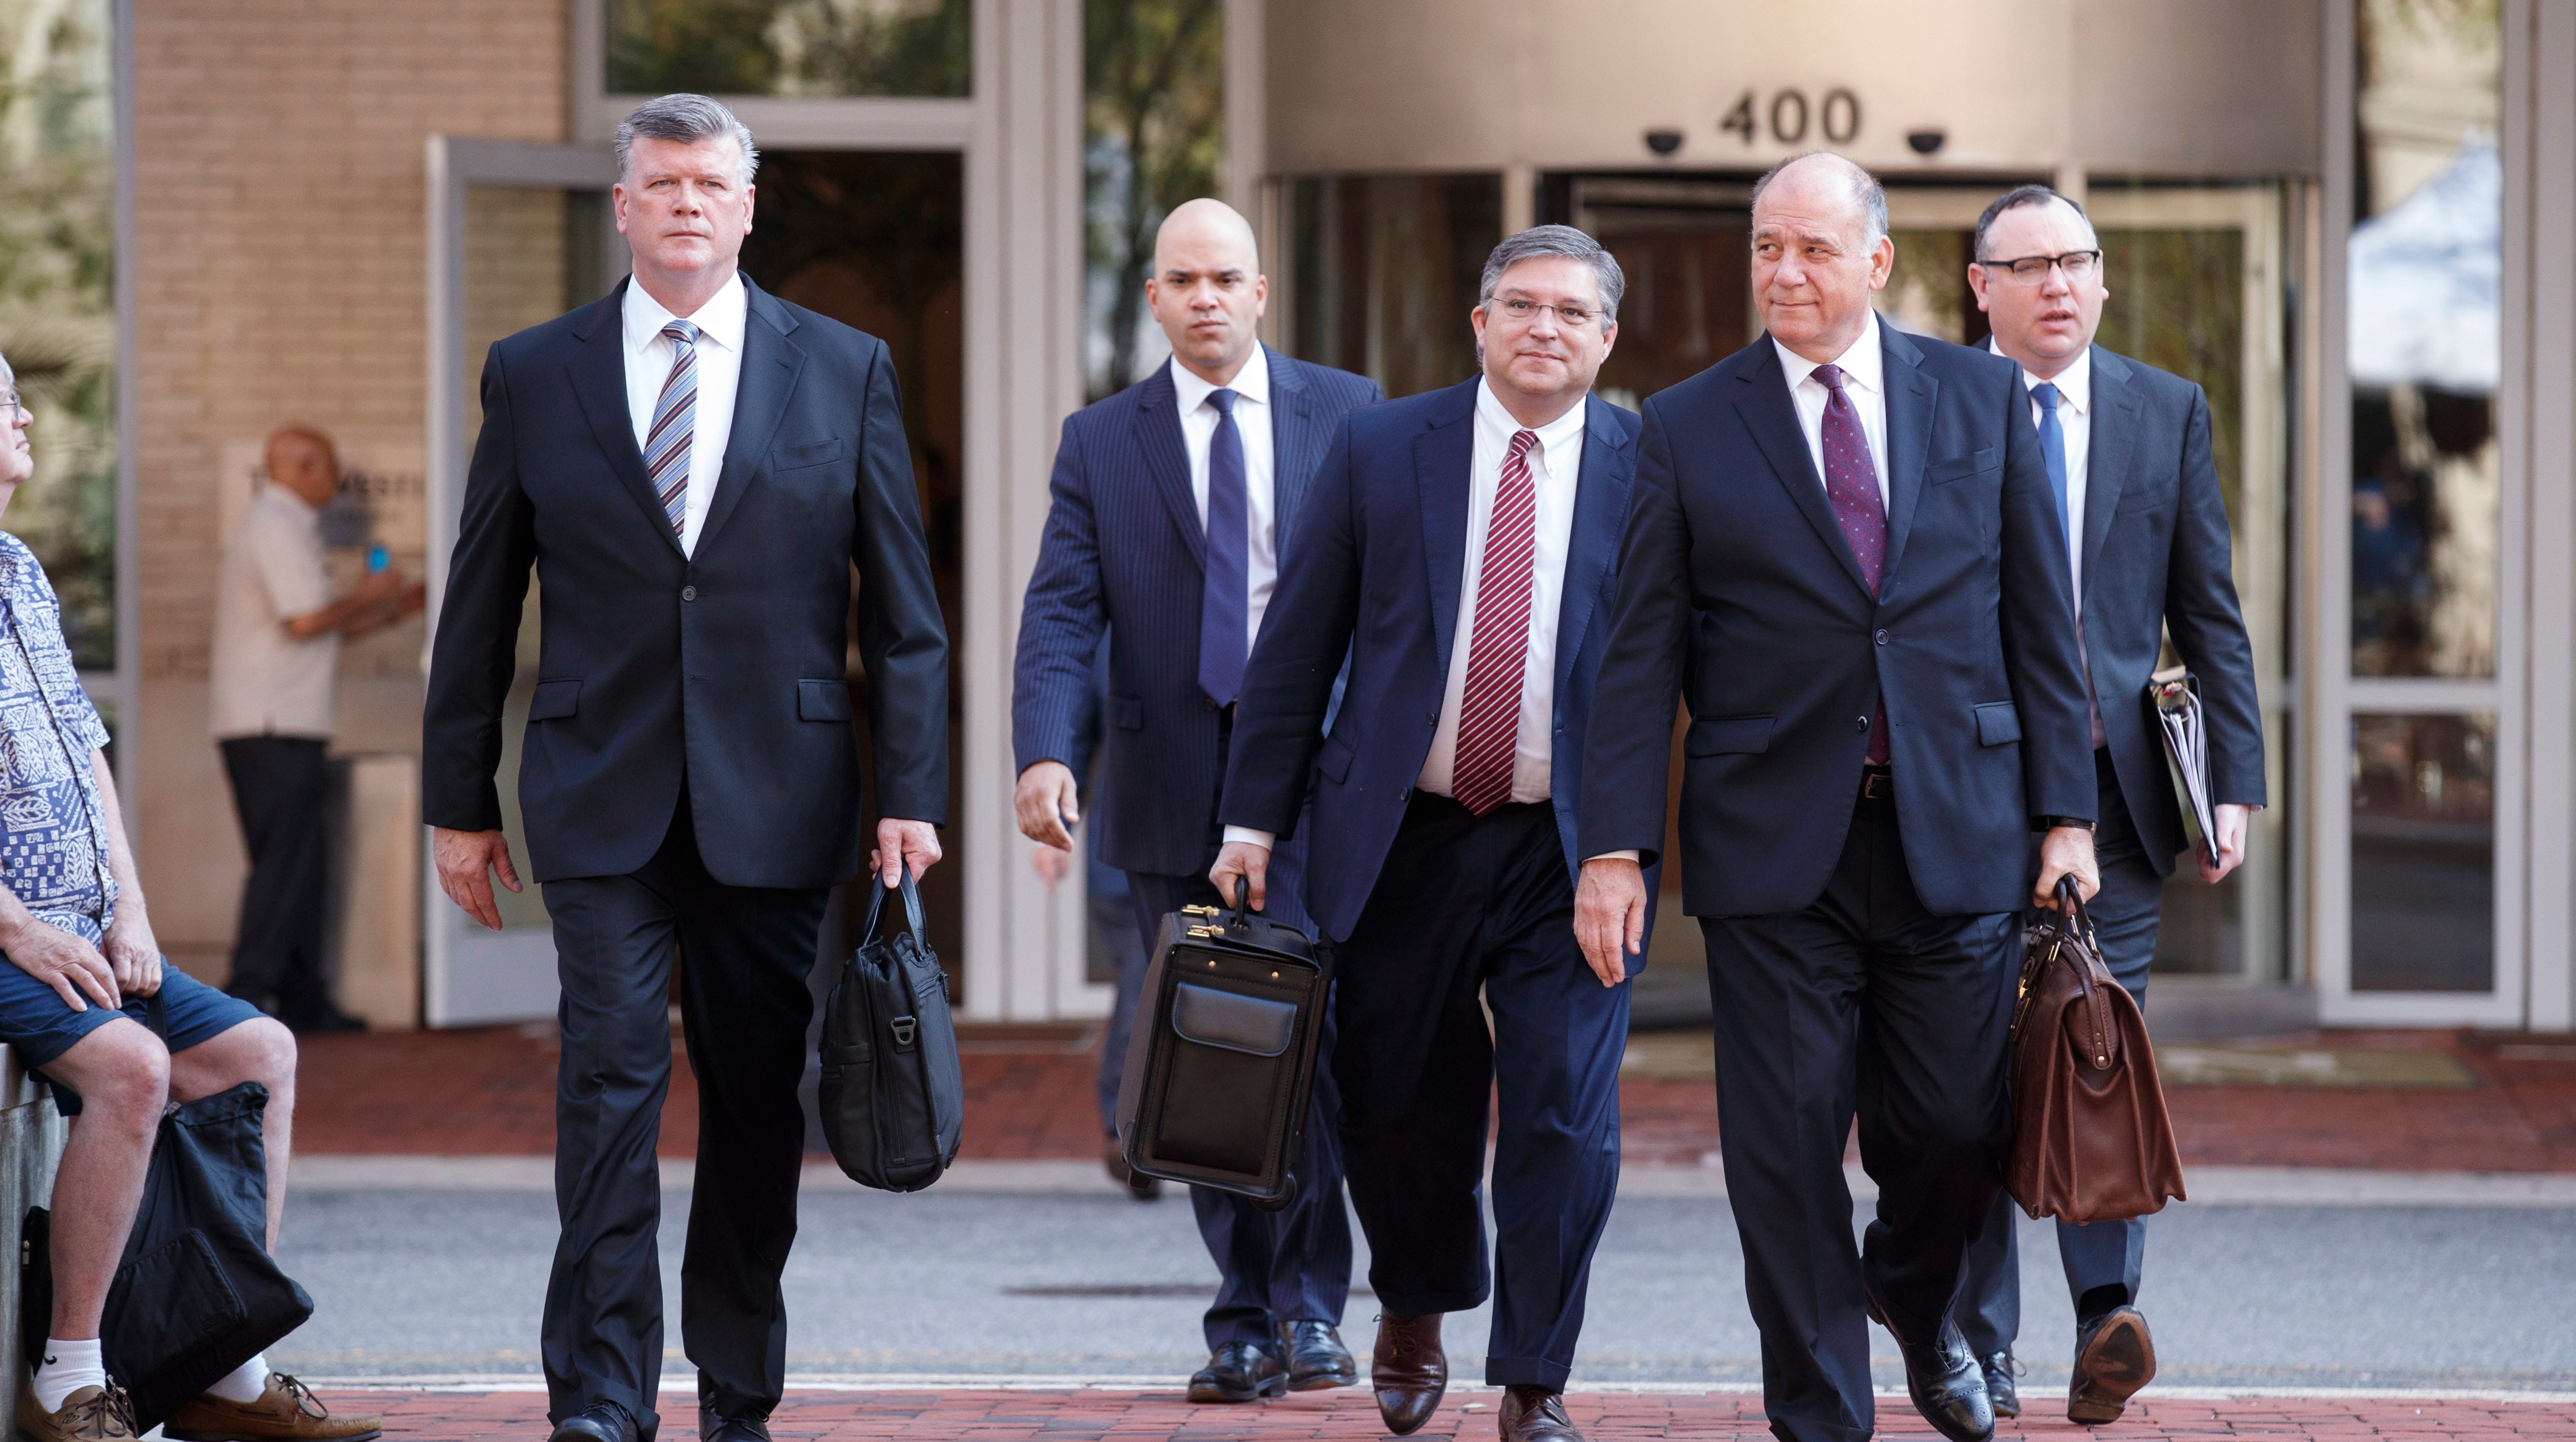 epa06951198 Kevin Downing (L), Jay Nanavati (2-L), Richard Westing (C), Thomas Zehnle (2-R) and Brian Ketcham (L), attorneys representing former US Predisent Donald J. Trump's campaign chairman Paul Manafort, arrive to US District Court for the ongoing Manafort trial in Alexandria, Virginia, USA, 15 August 2018. Manafort is facing over a dozen charges including tax evasion and bank fraud.  EPA-EFE/SHAWN THEW ORG XMIT: STX01